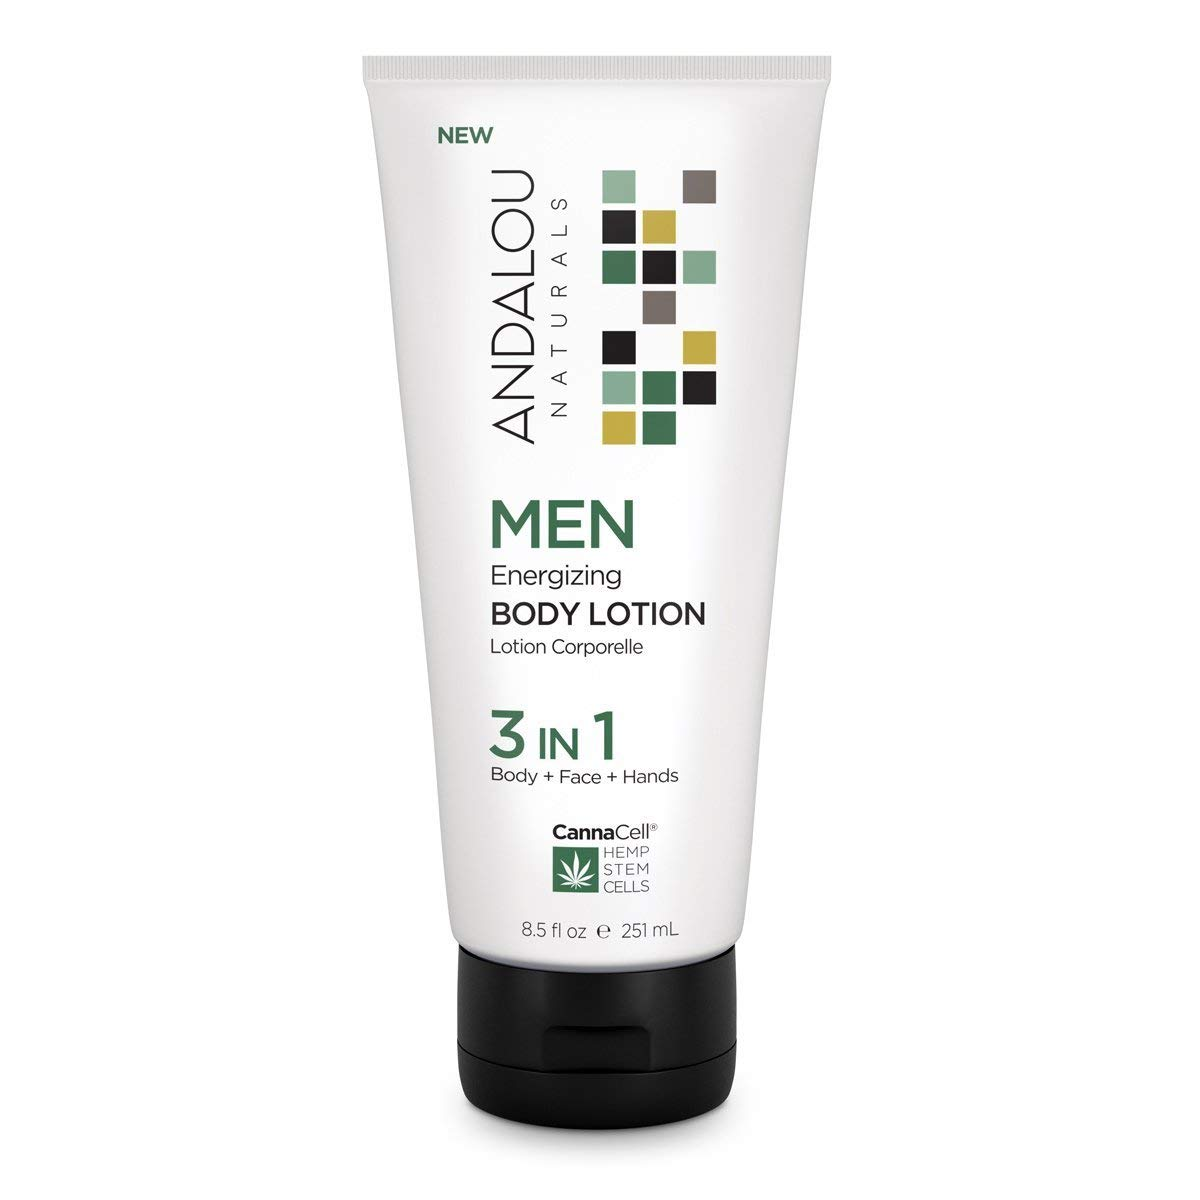 Andalou Naturals CannaCell MEN Energizing 3-in-1 Body Lotion 8.5 fl oz